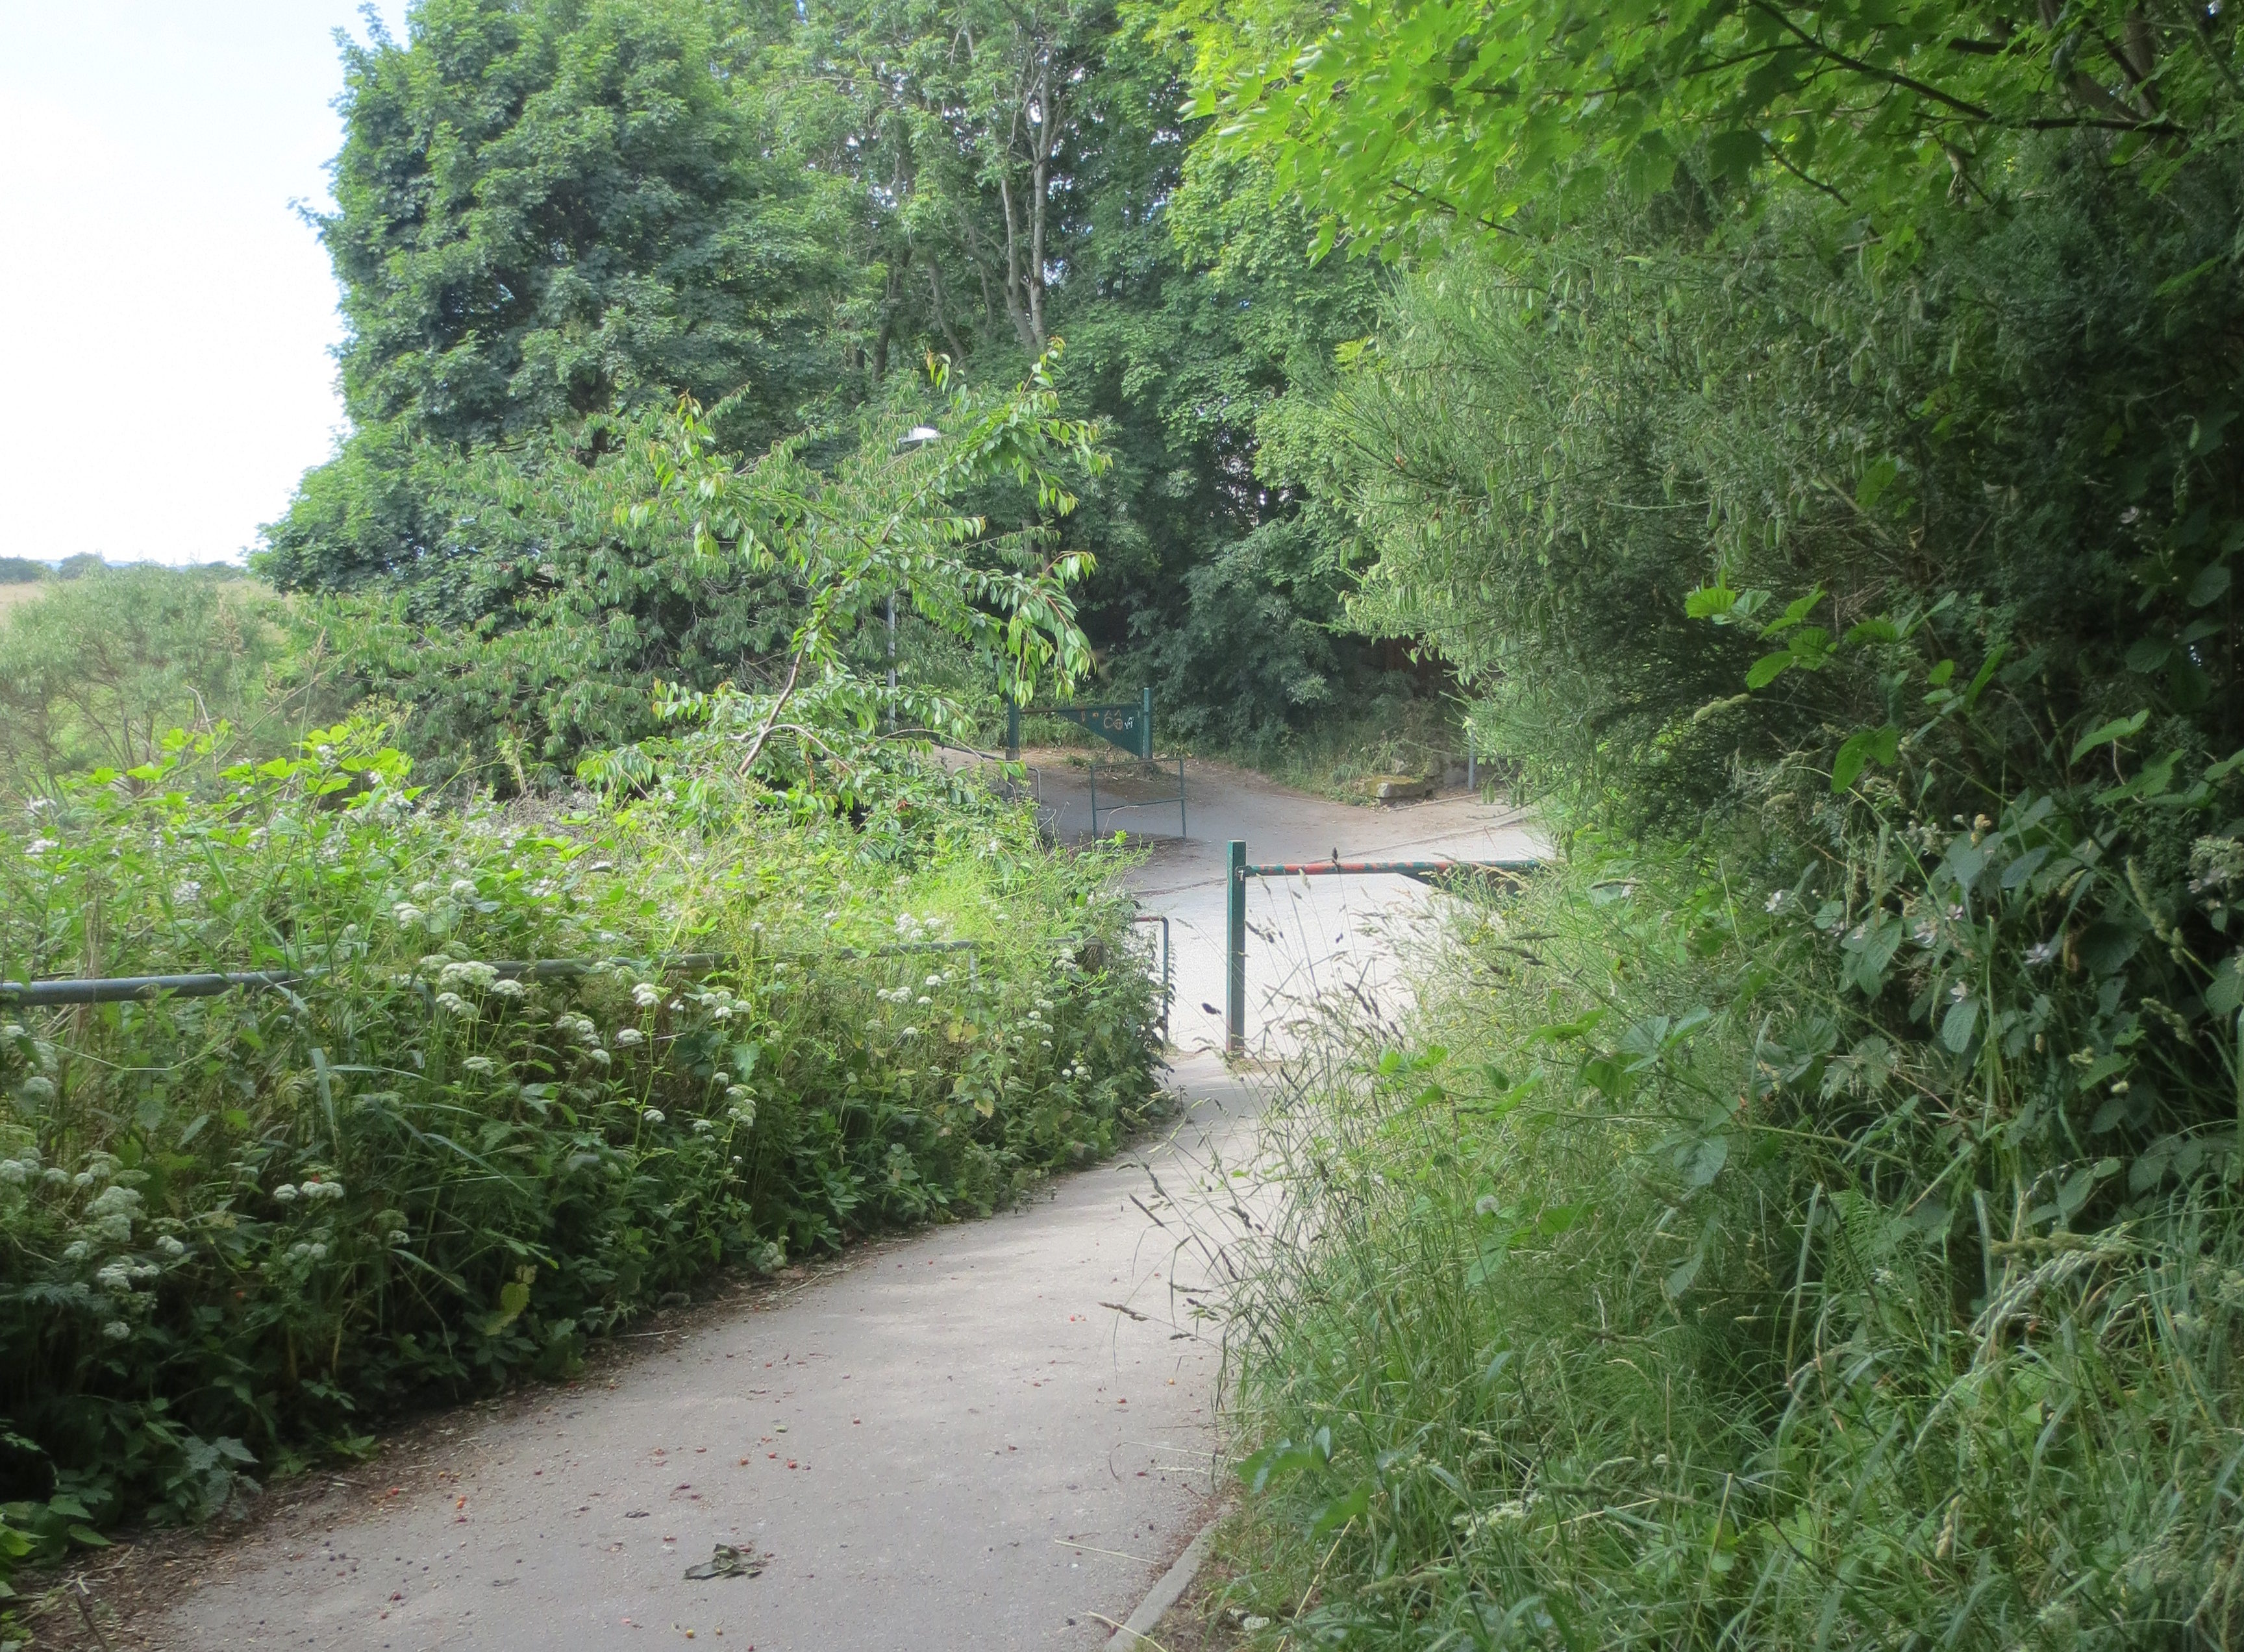 Councillors are looking at ways to improve this section of The Deeside Way.